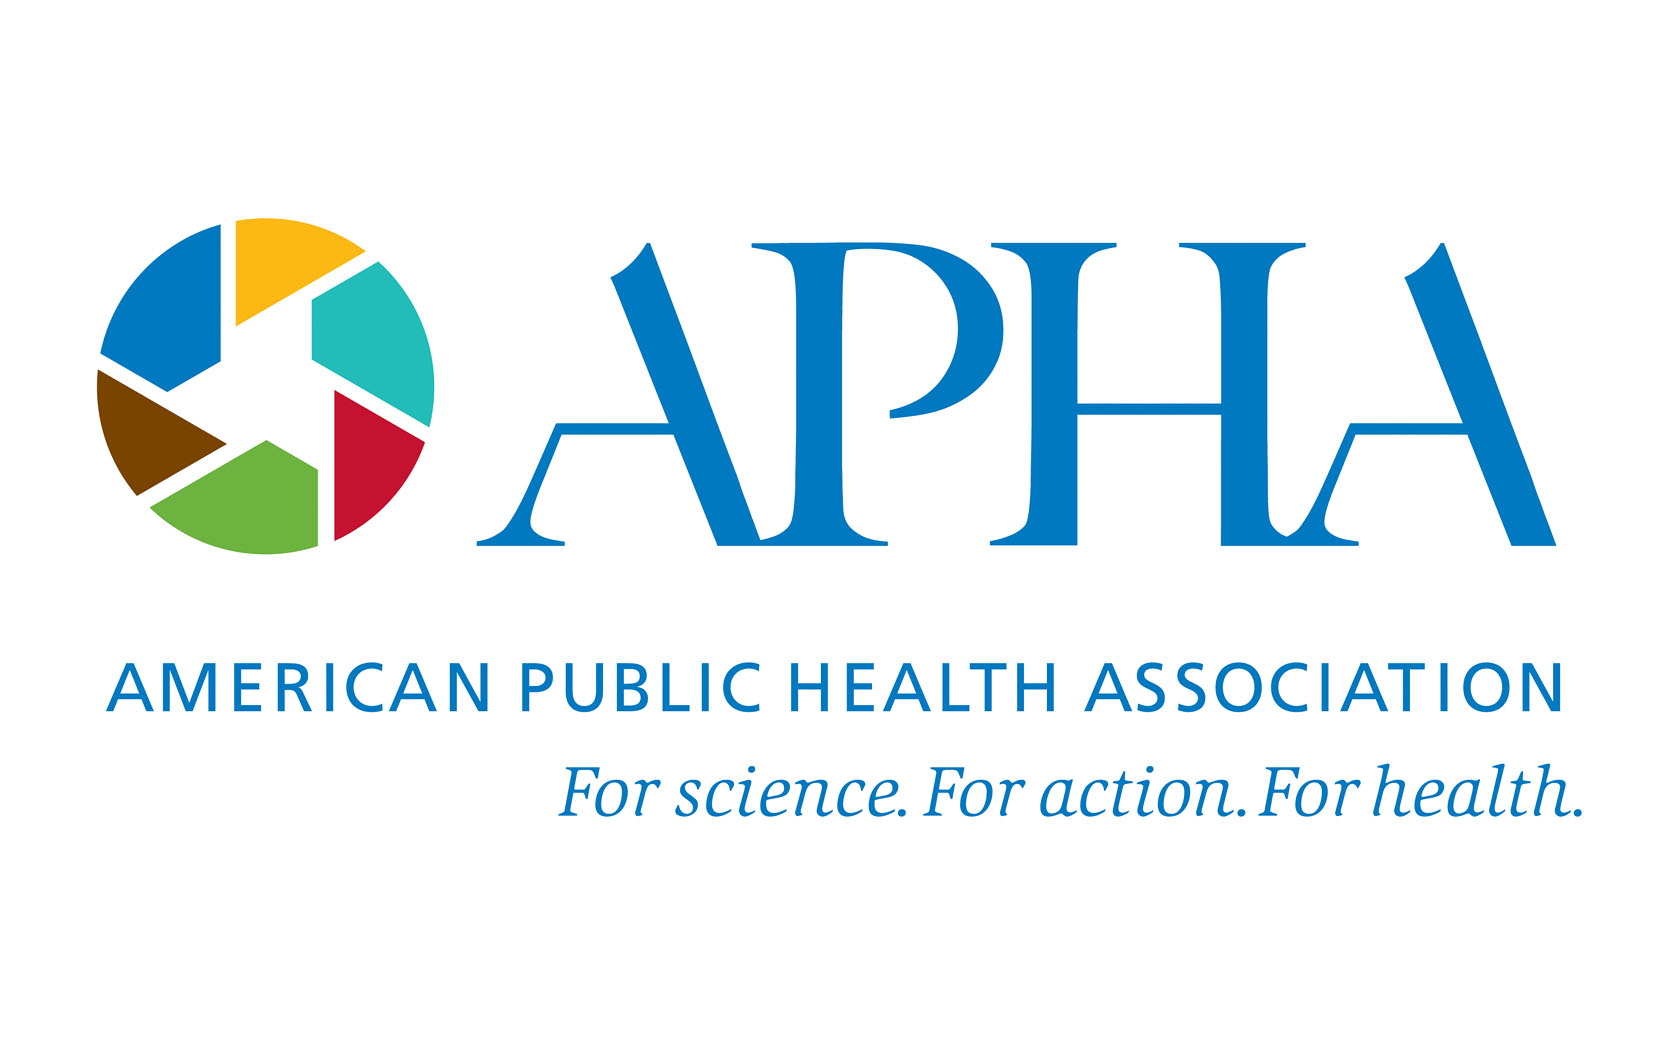 UCI Public Health Student Project awarded second place in APHA Environmental Section's Student Achievement Poster Awards